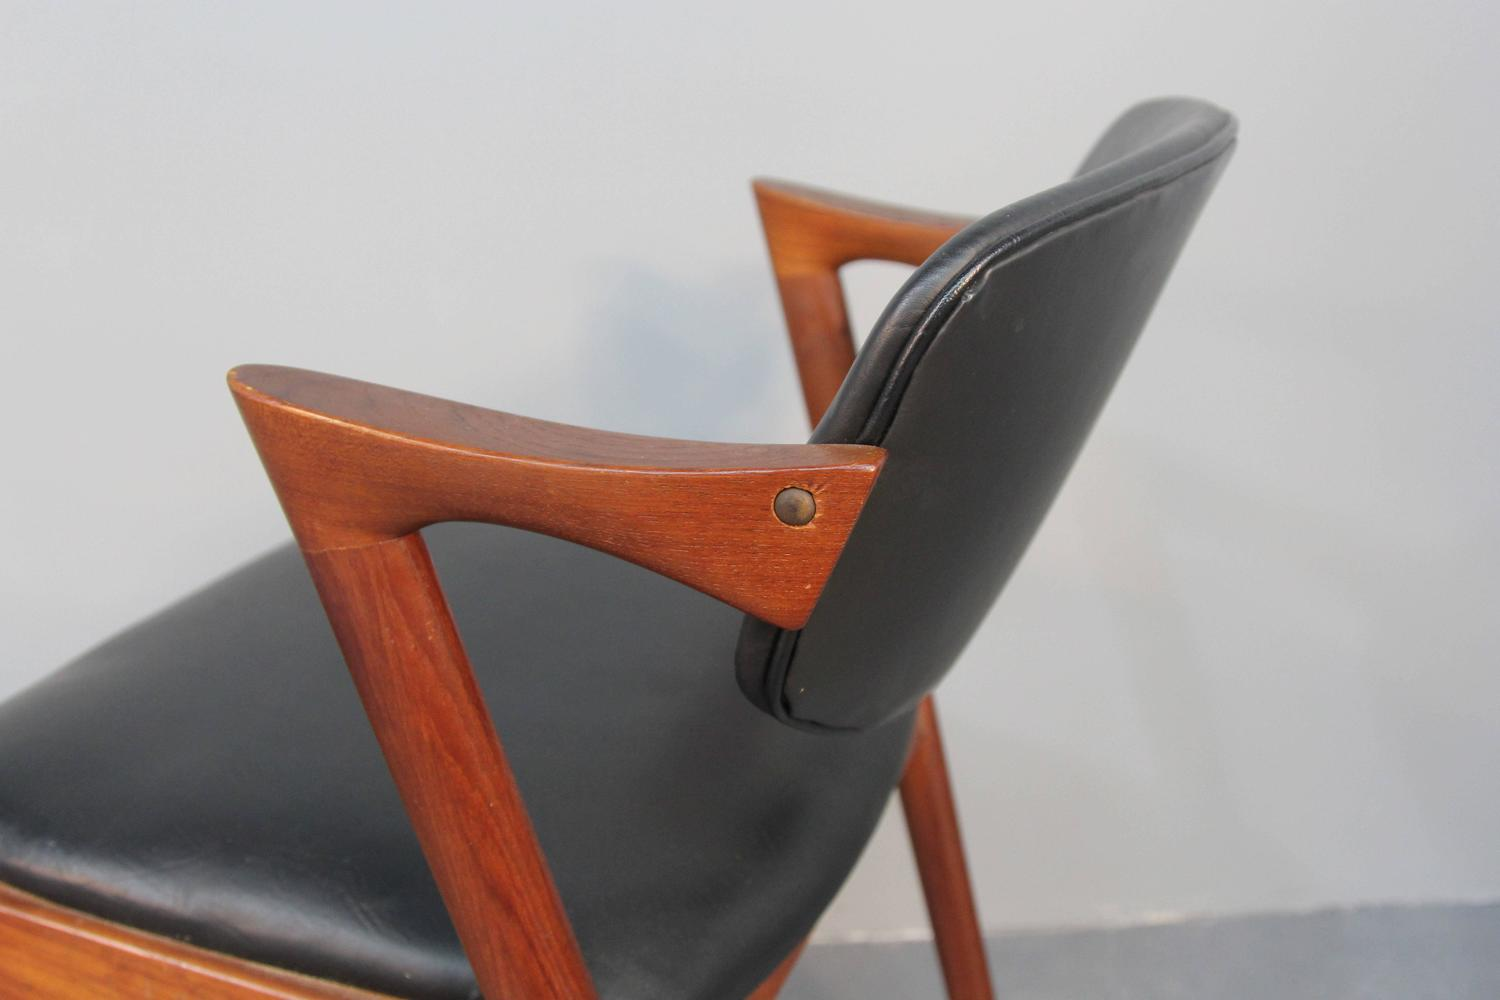 Kai kristiansen model 42 teak z chairs set of six at 1stdibs - Kai kristiansen chairs ...